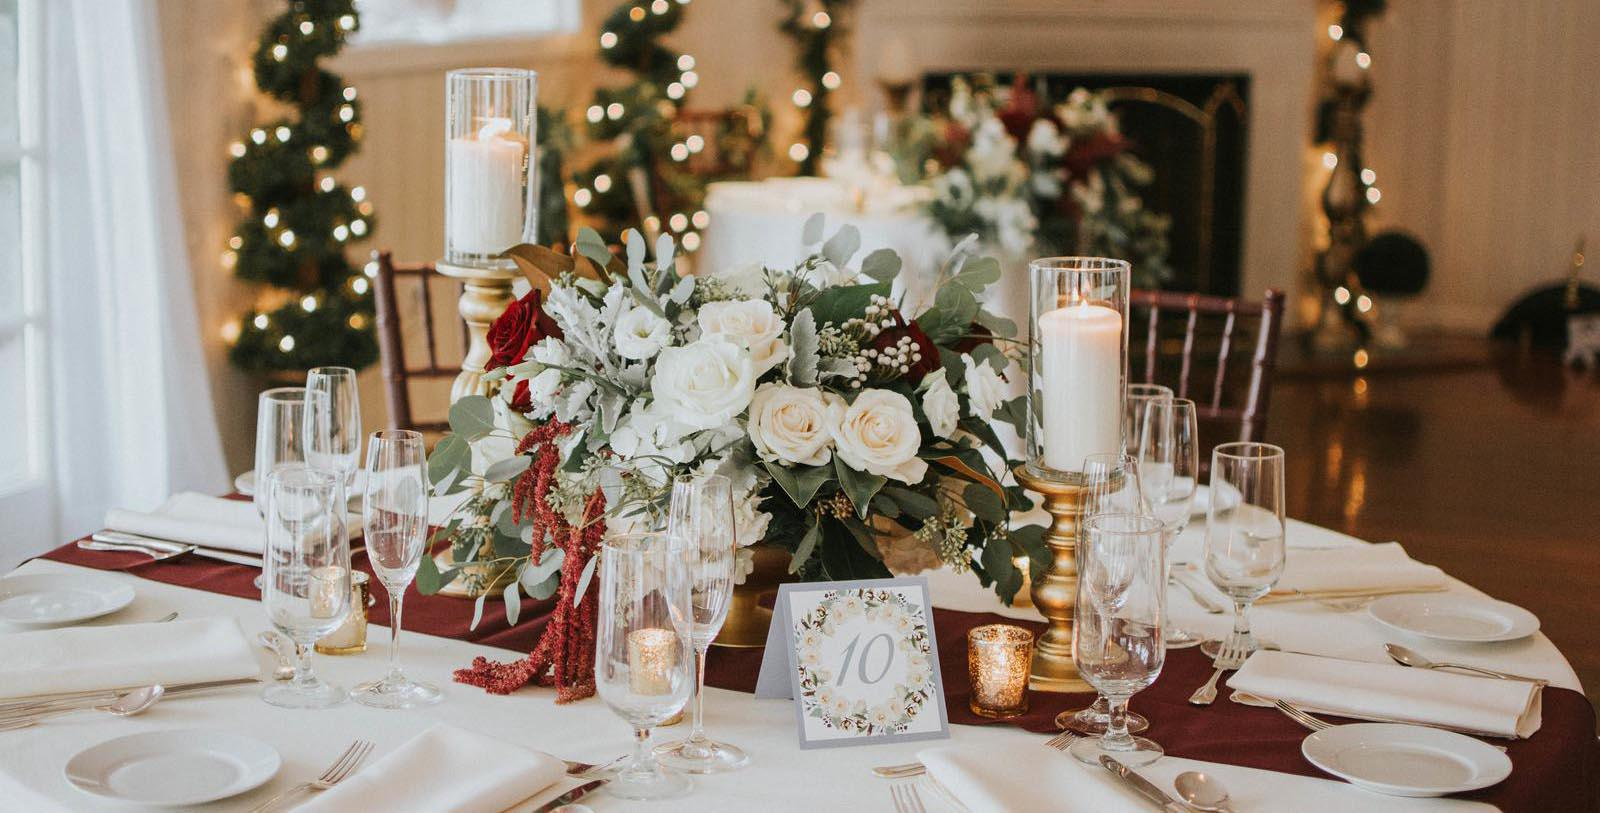 Image of Formal Table setting for special event at Antrim 1844, Member of Historic Hotels of America, in Taneytown, Maryland, Special Occasions